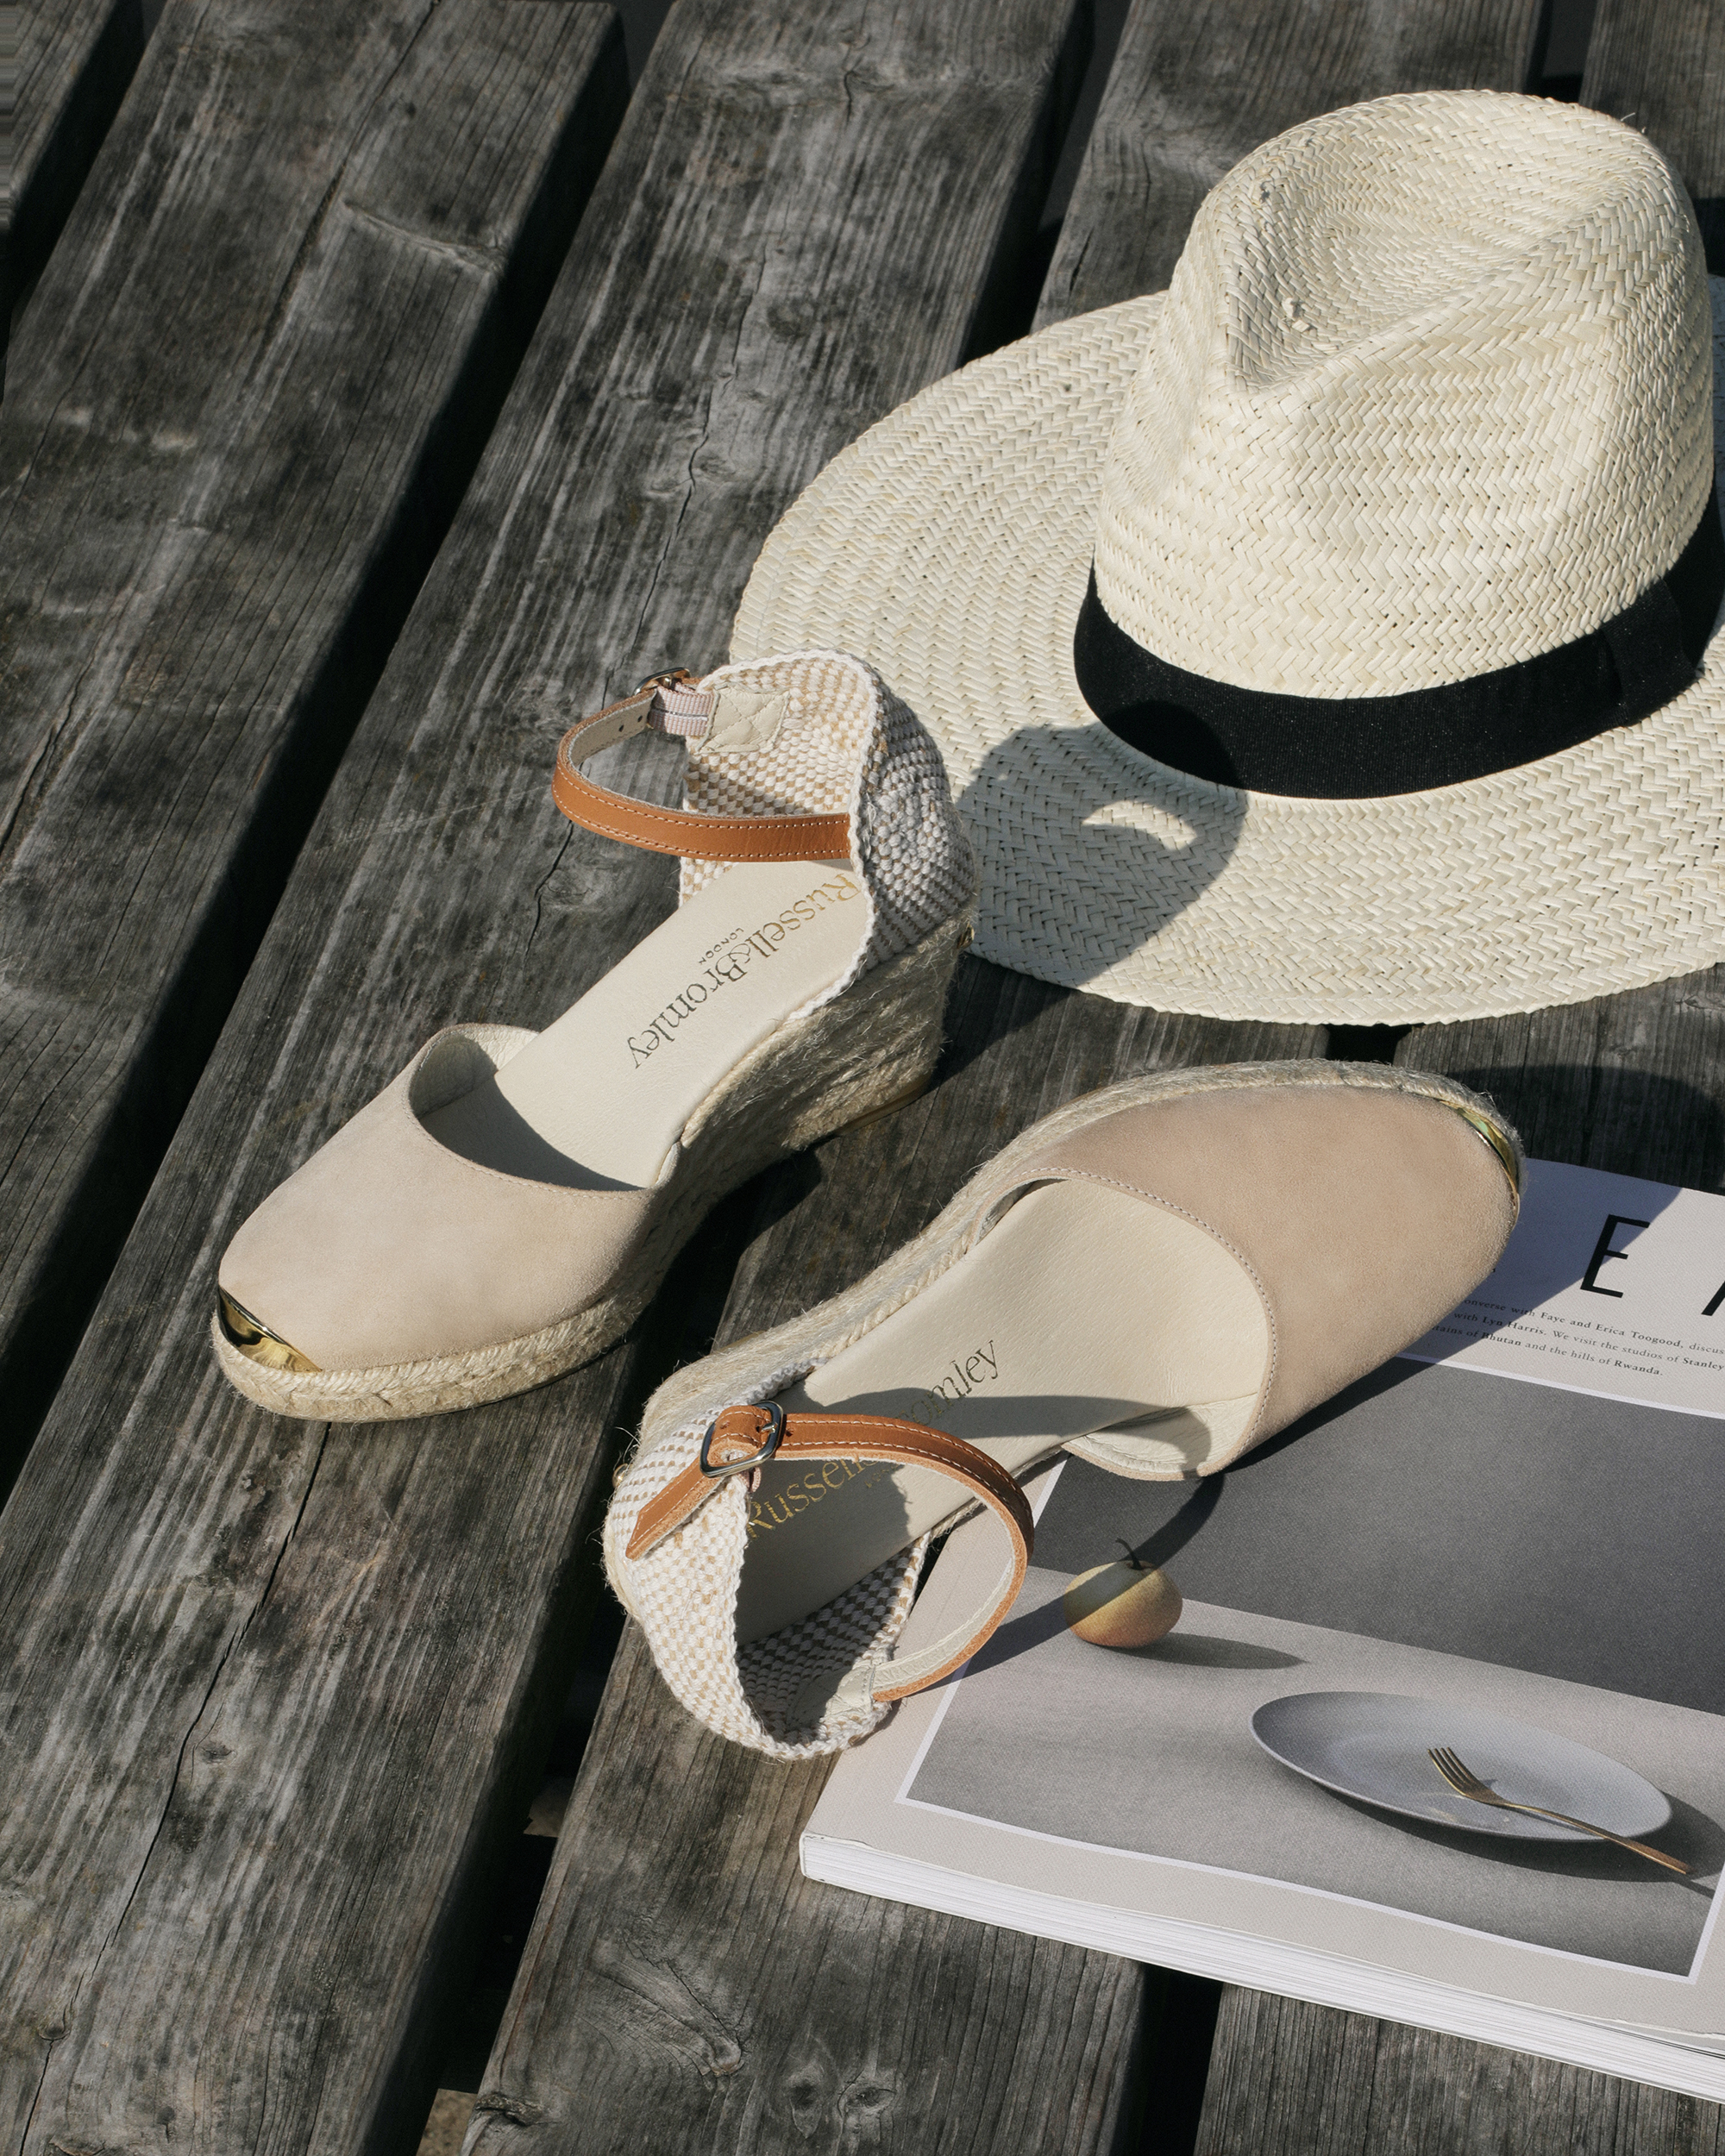 Russell and bromley shoe still life photography- Summer